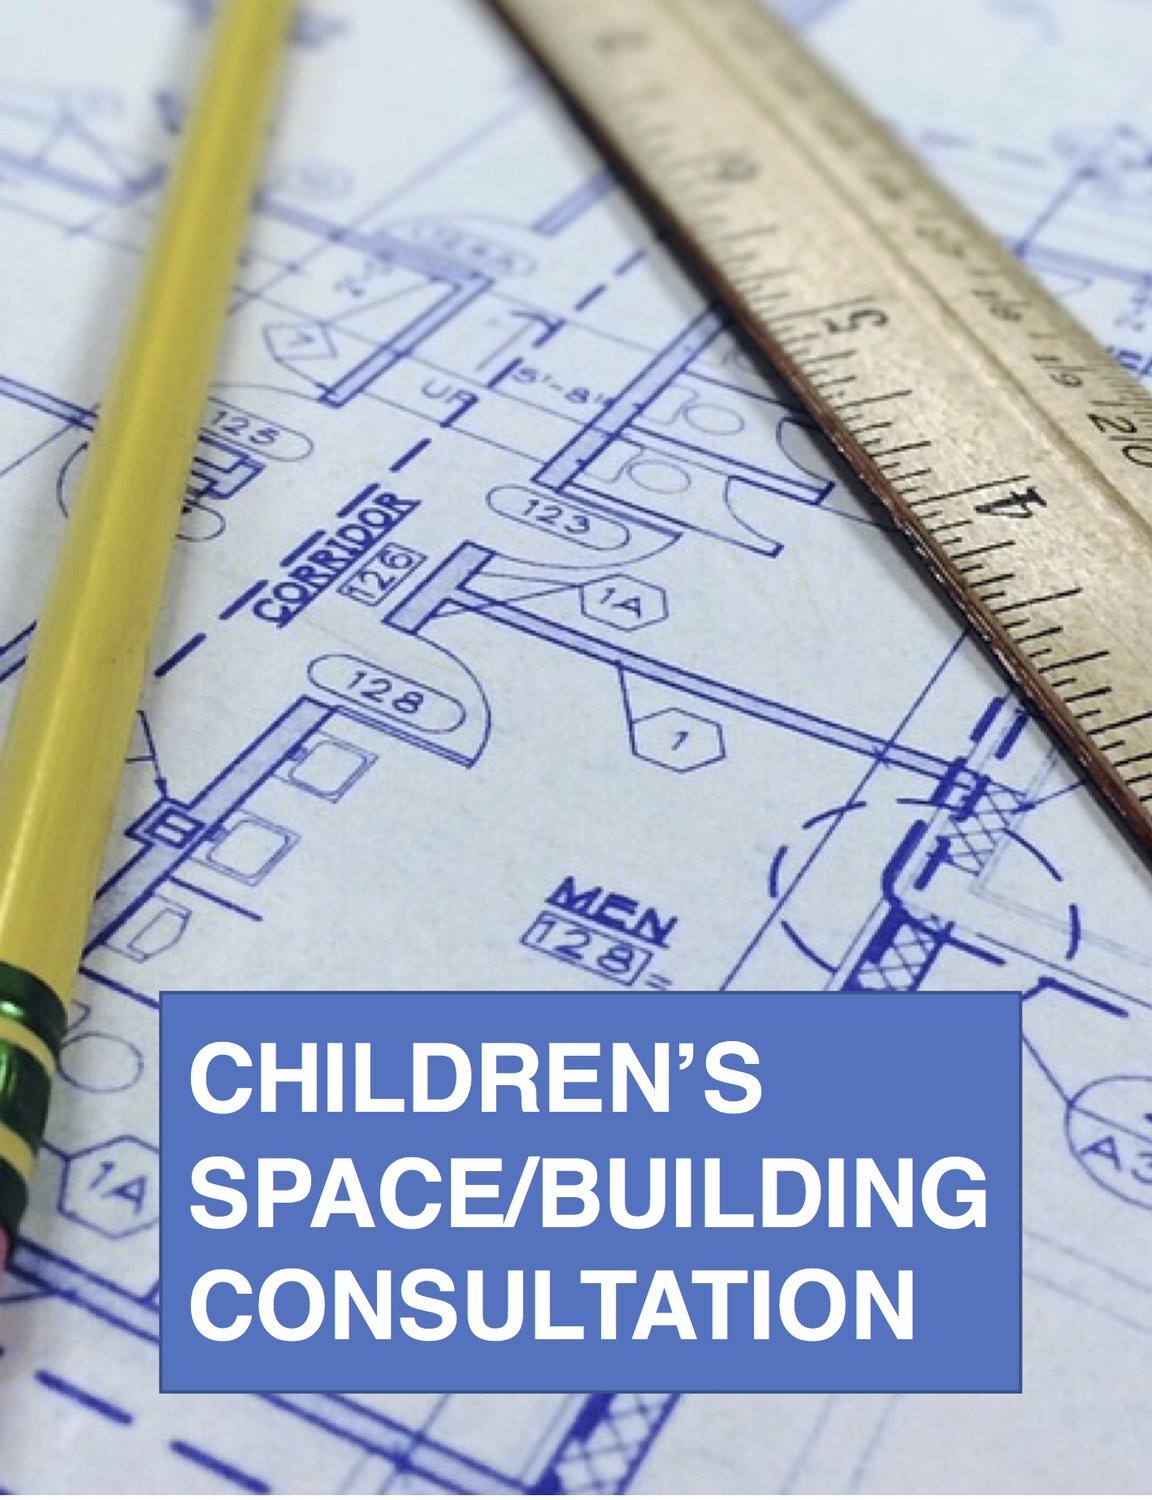 CHILDREN'S SPACE / FACILITY CONSULTATION